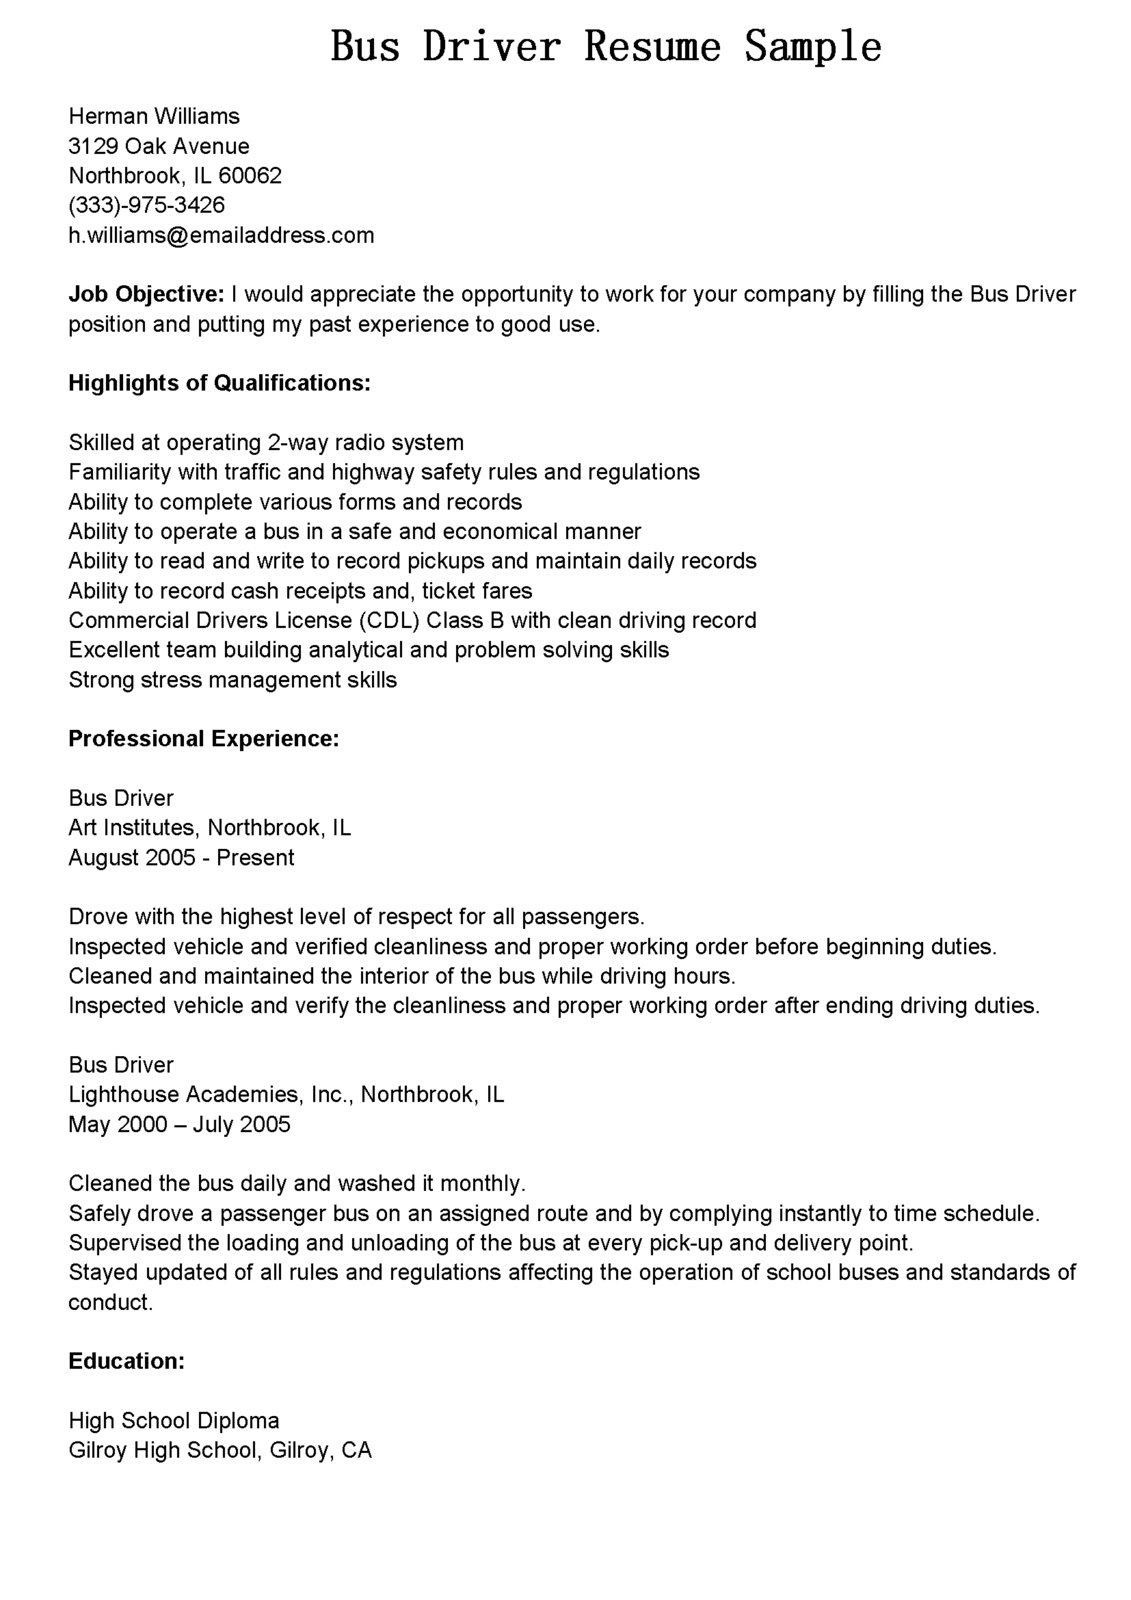 truck driver resume sample truck driver resume sample and tips driver resume beautician cosmetologist resum otr - Sample Resume For Shuttle Bus Driver